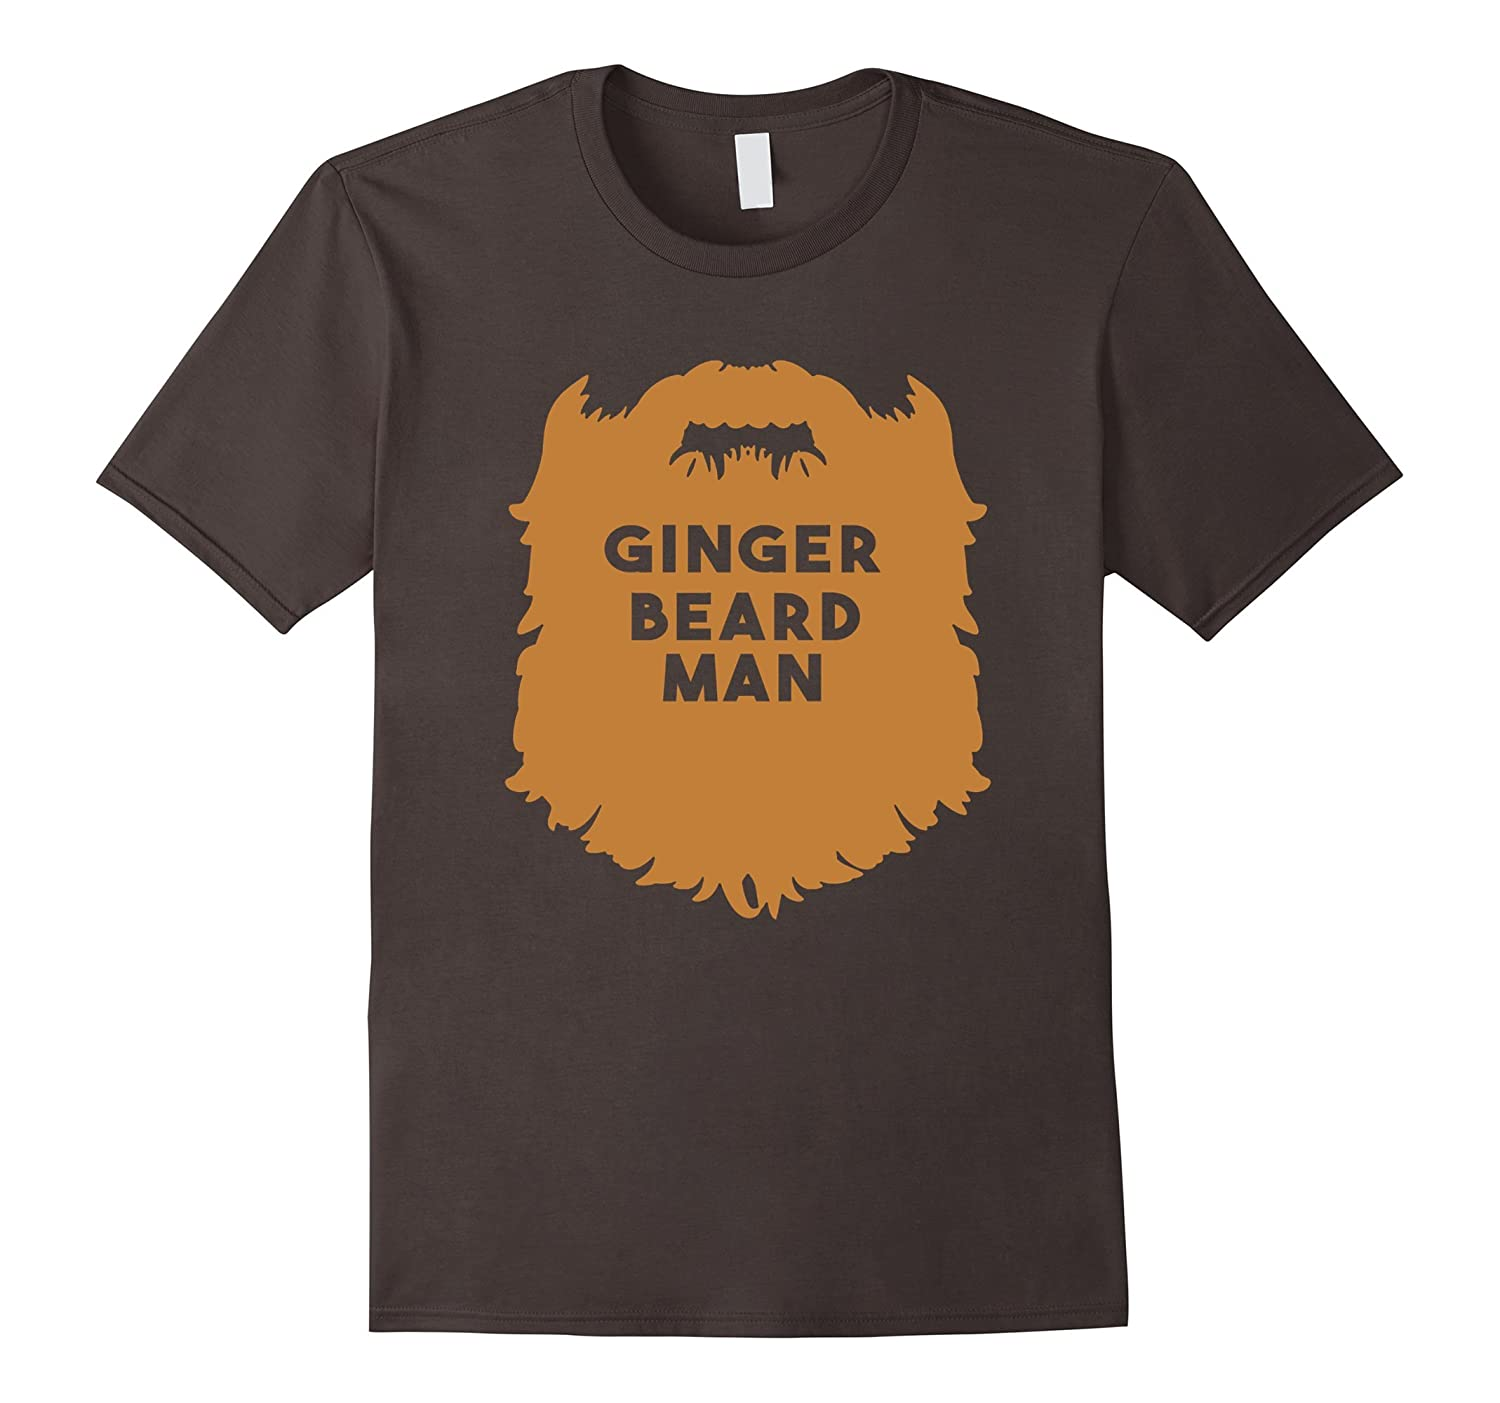 Mens Beard Man Shirt - Ginger Beard Man-TD